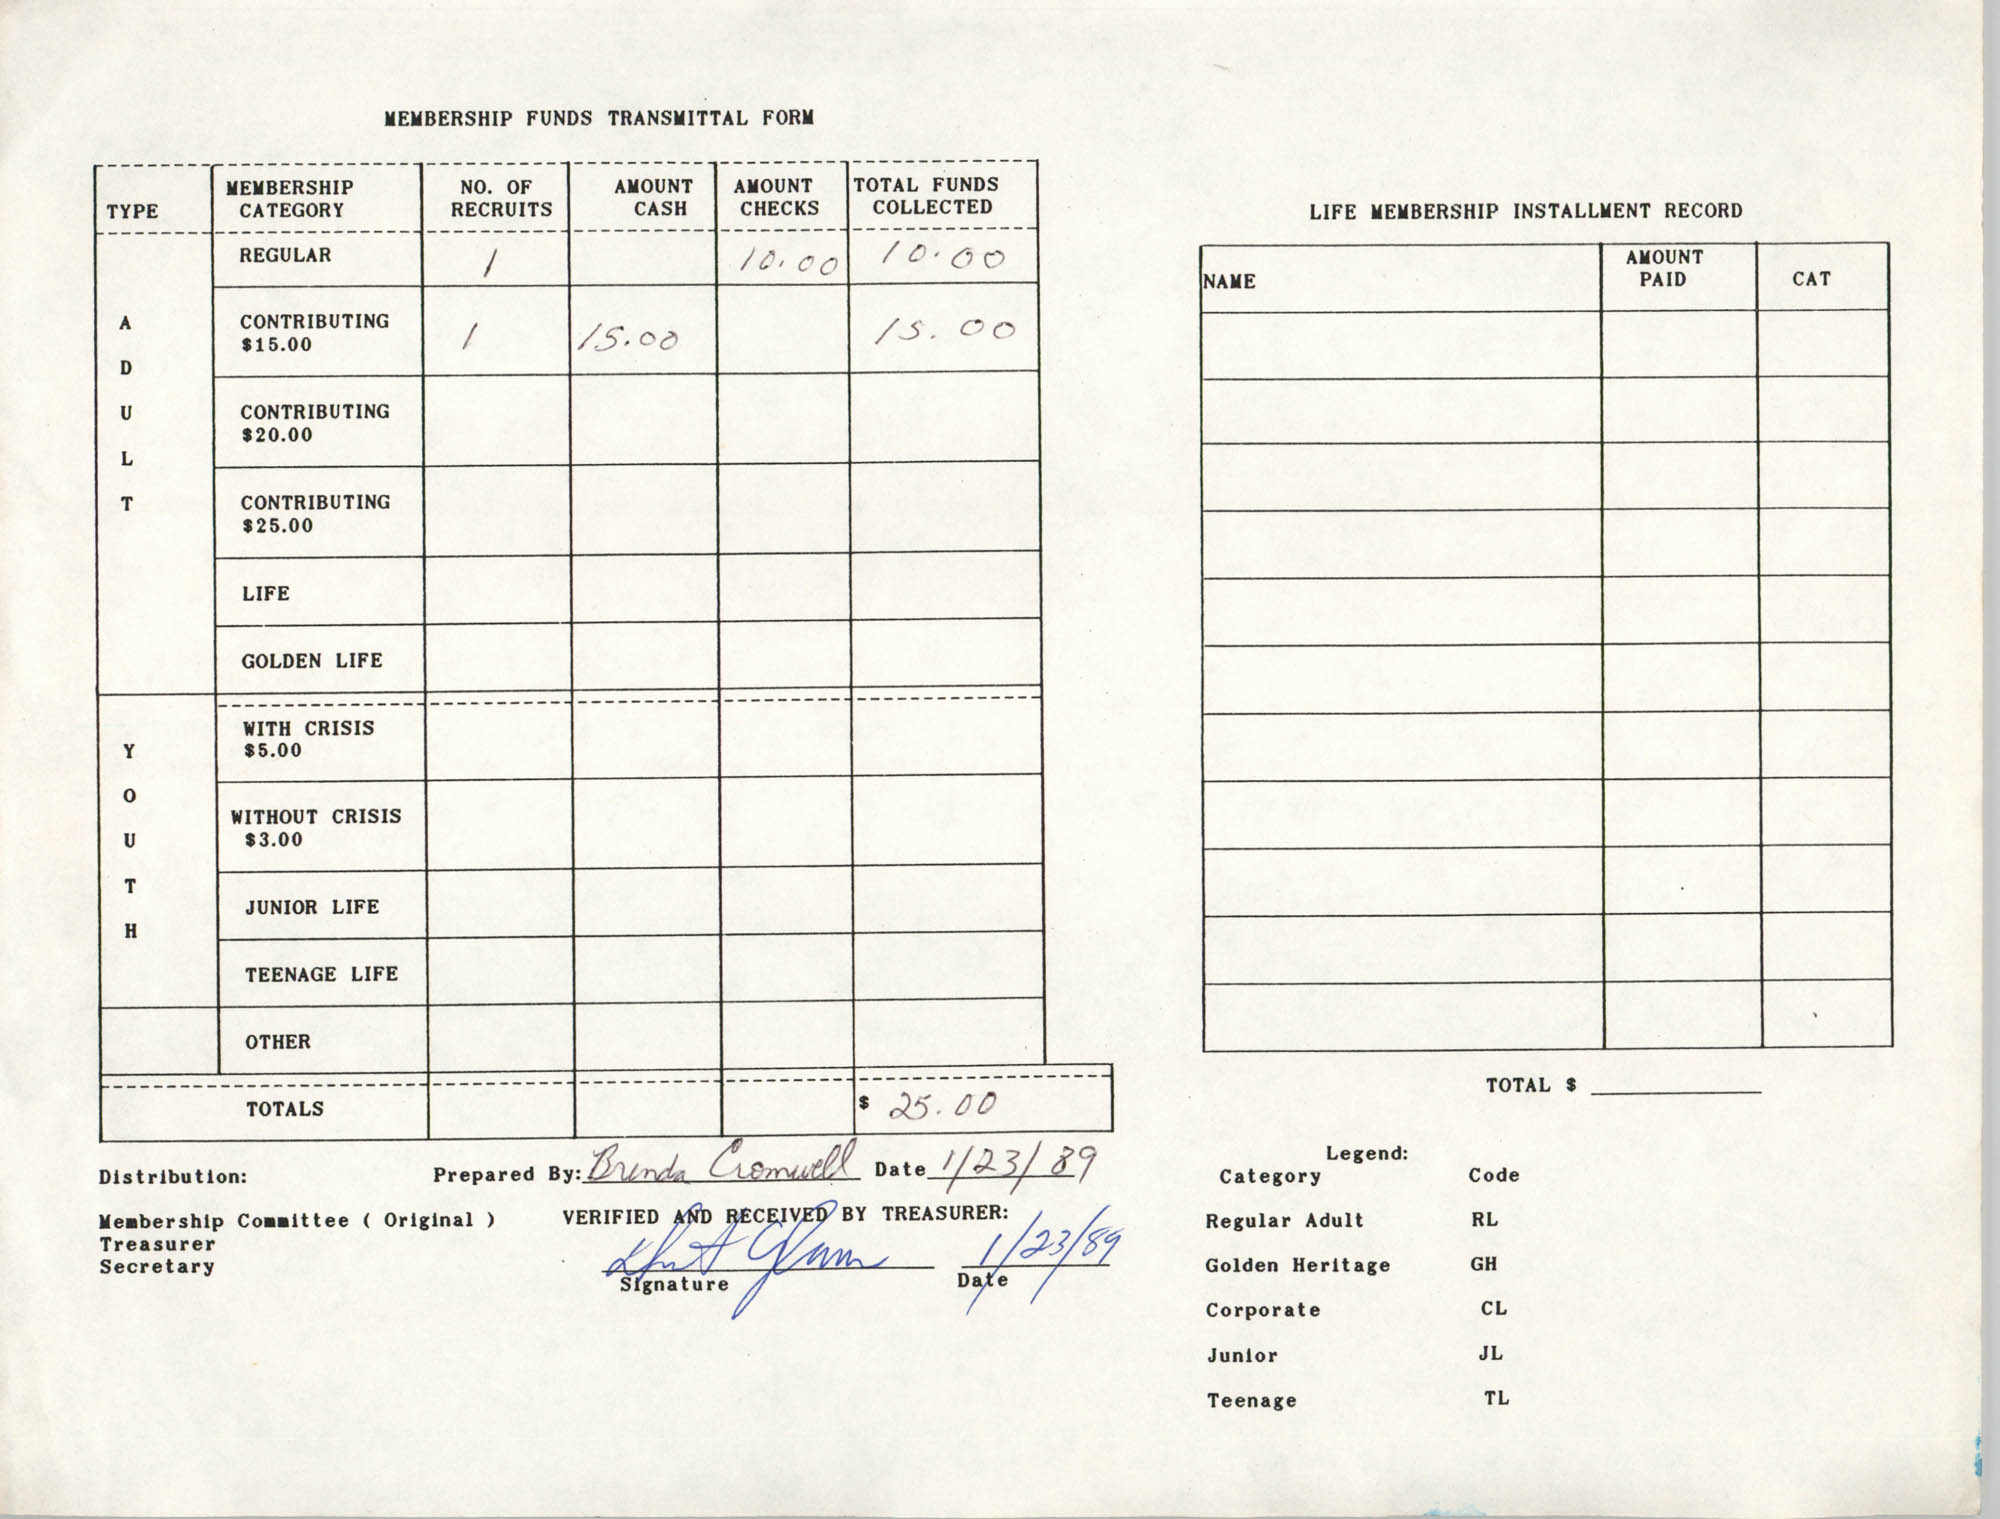 Charleston Branch of the NAACP Funds Transmittal Forms, 1989 to 1991